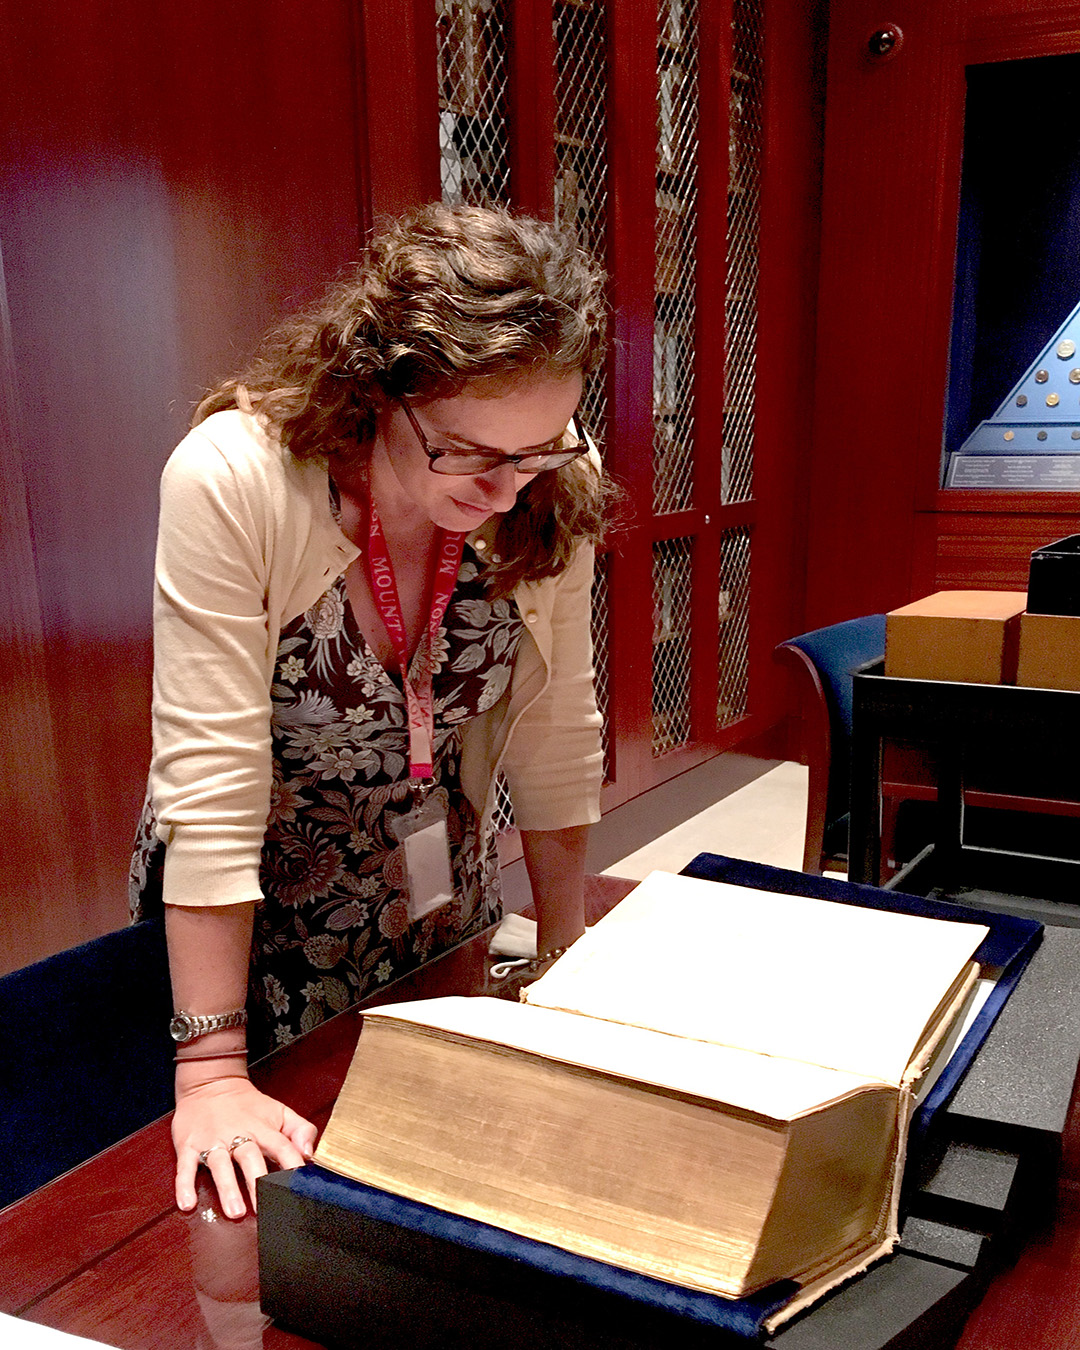 Dr. Cassie Good reads a book inside the Washington Library at Mount Vernon